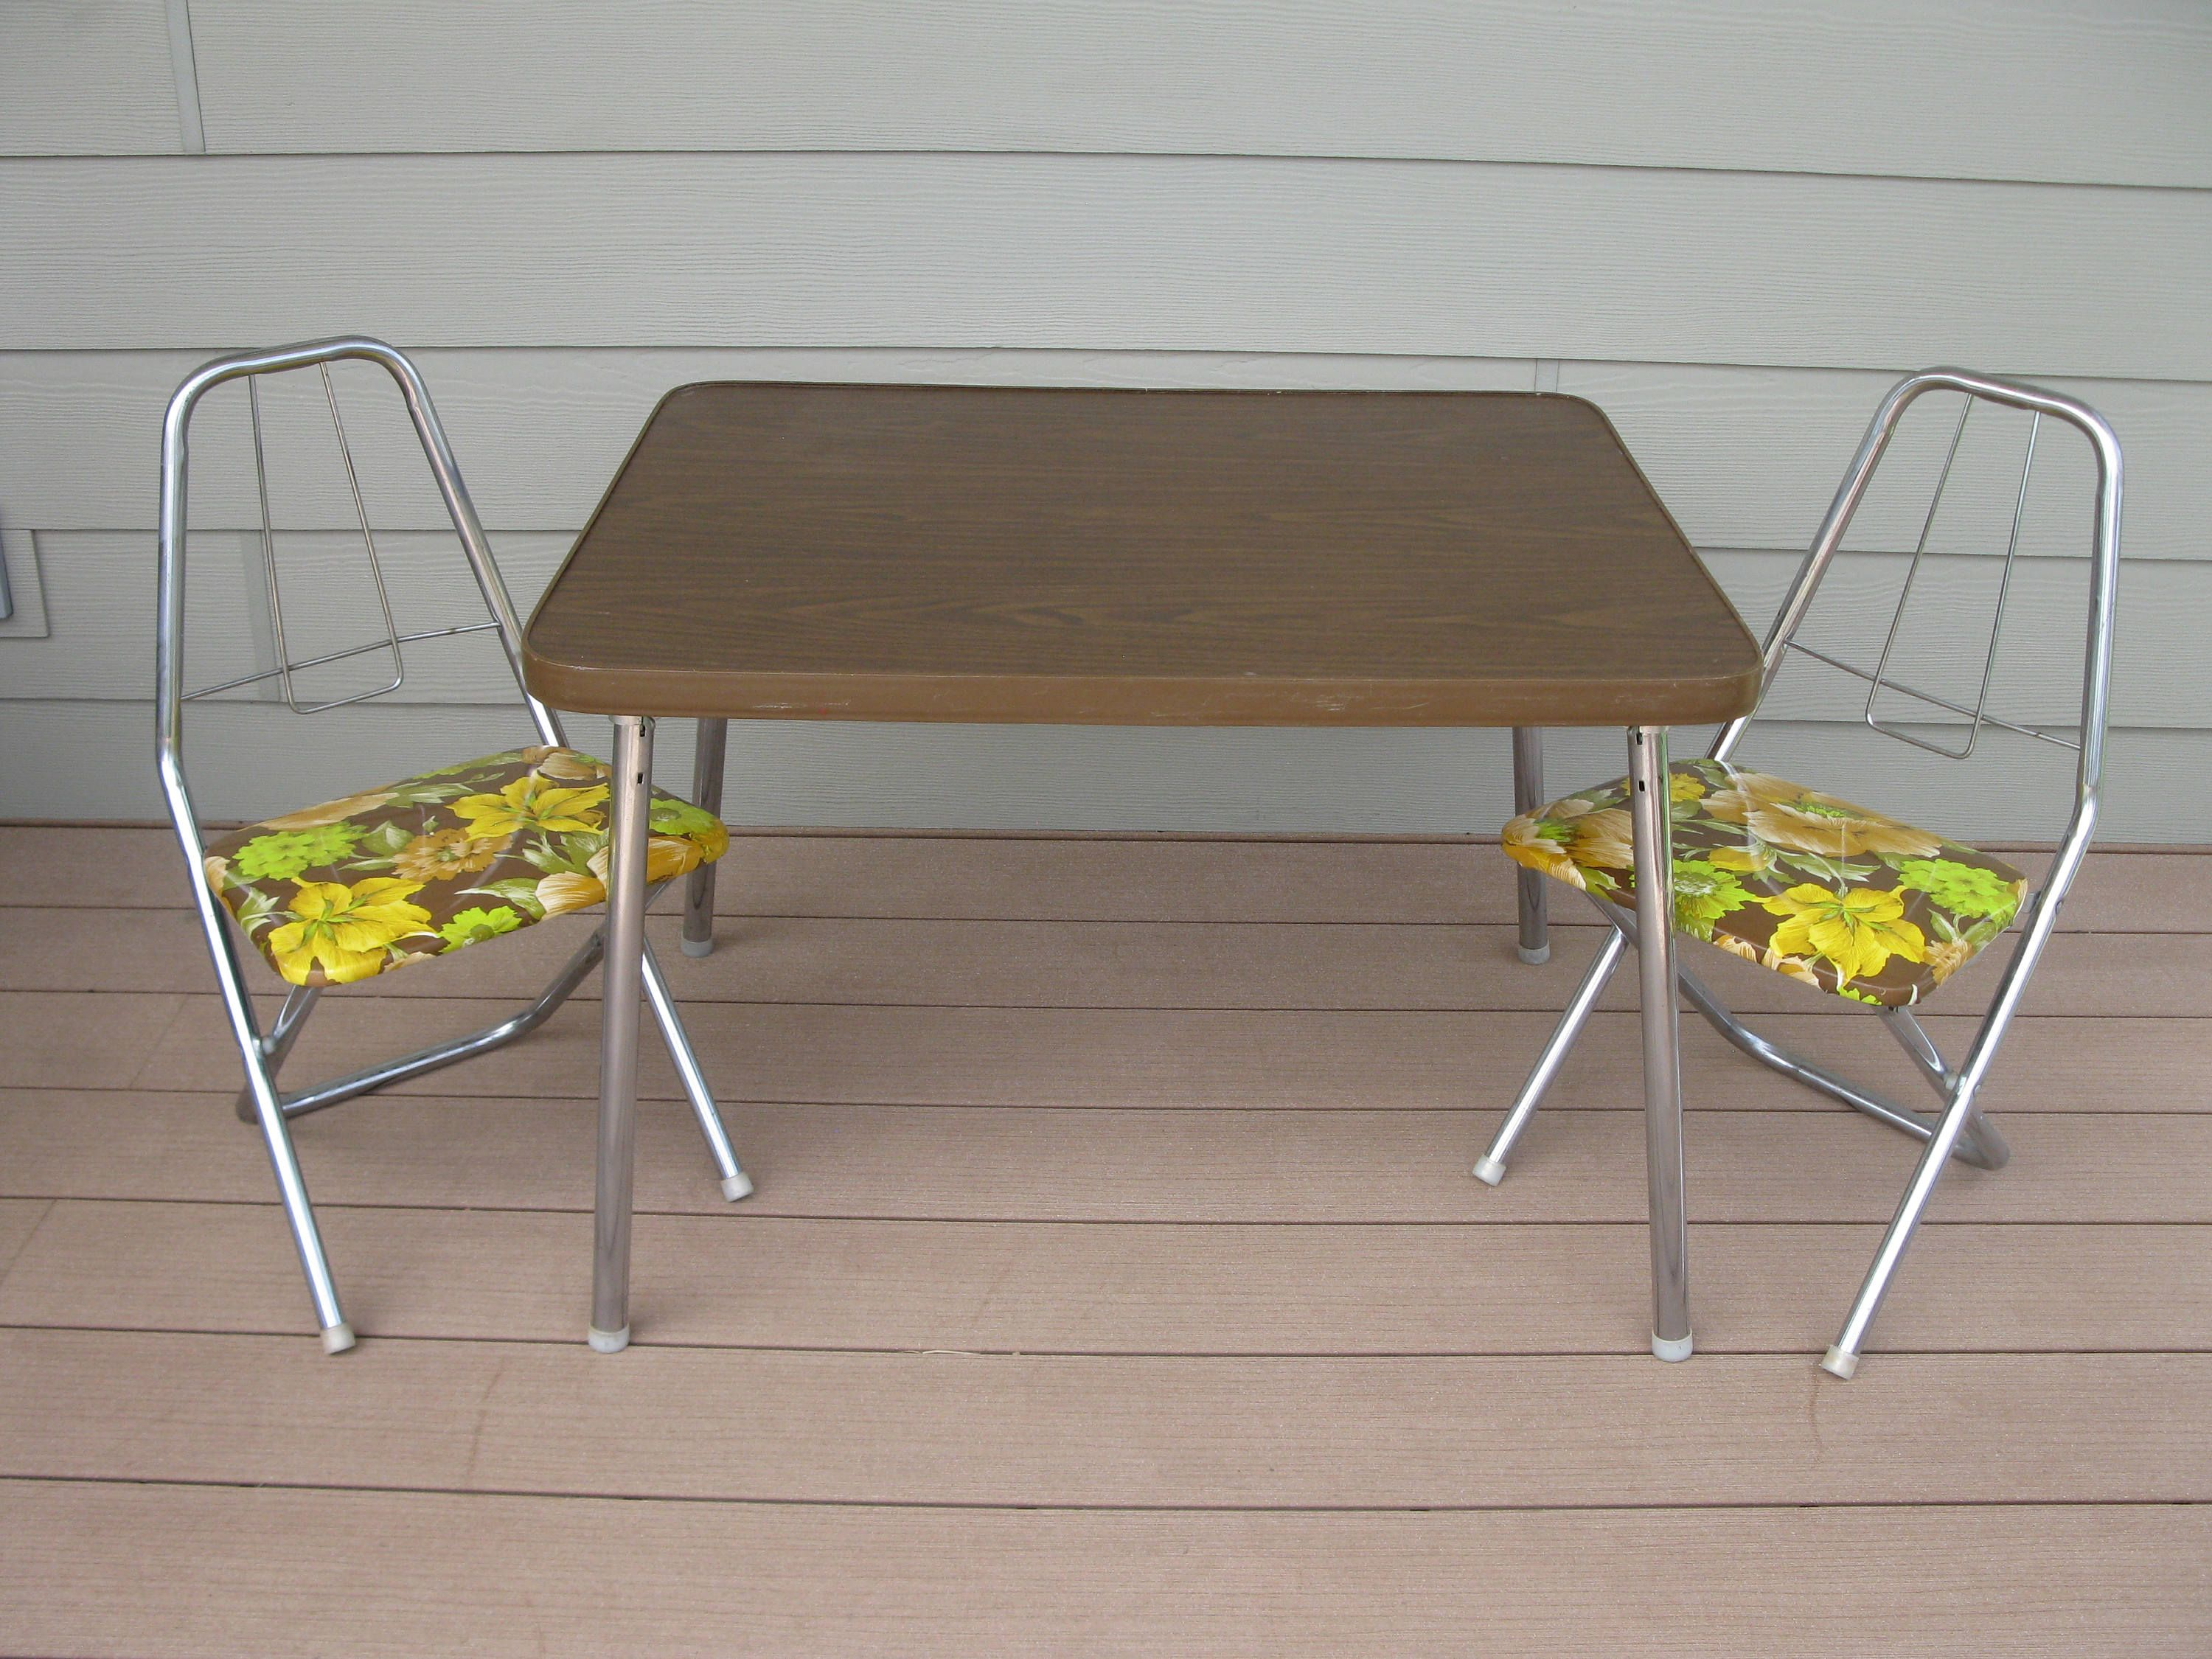 Vintage Childs Table and Chair set Folding Chairs CHROME